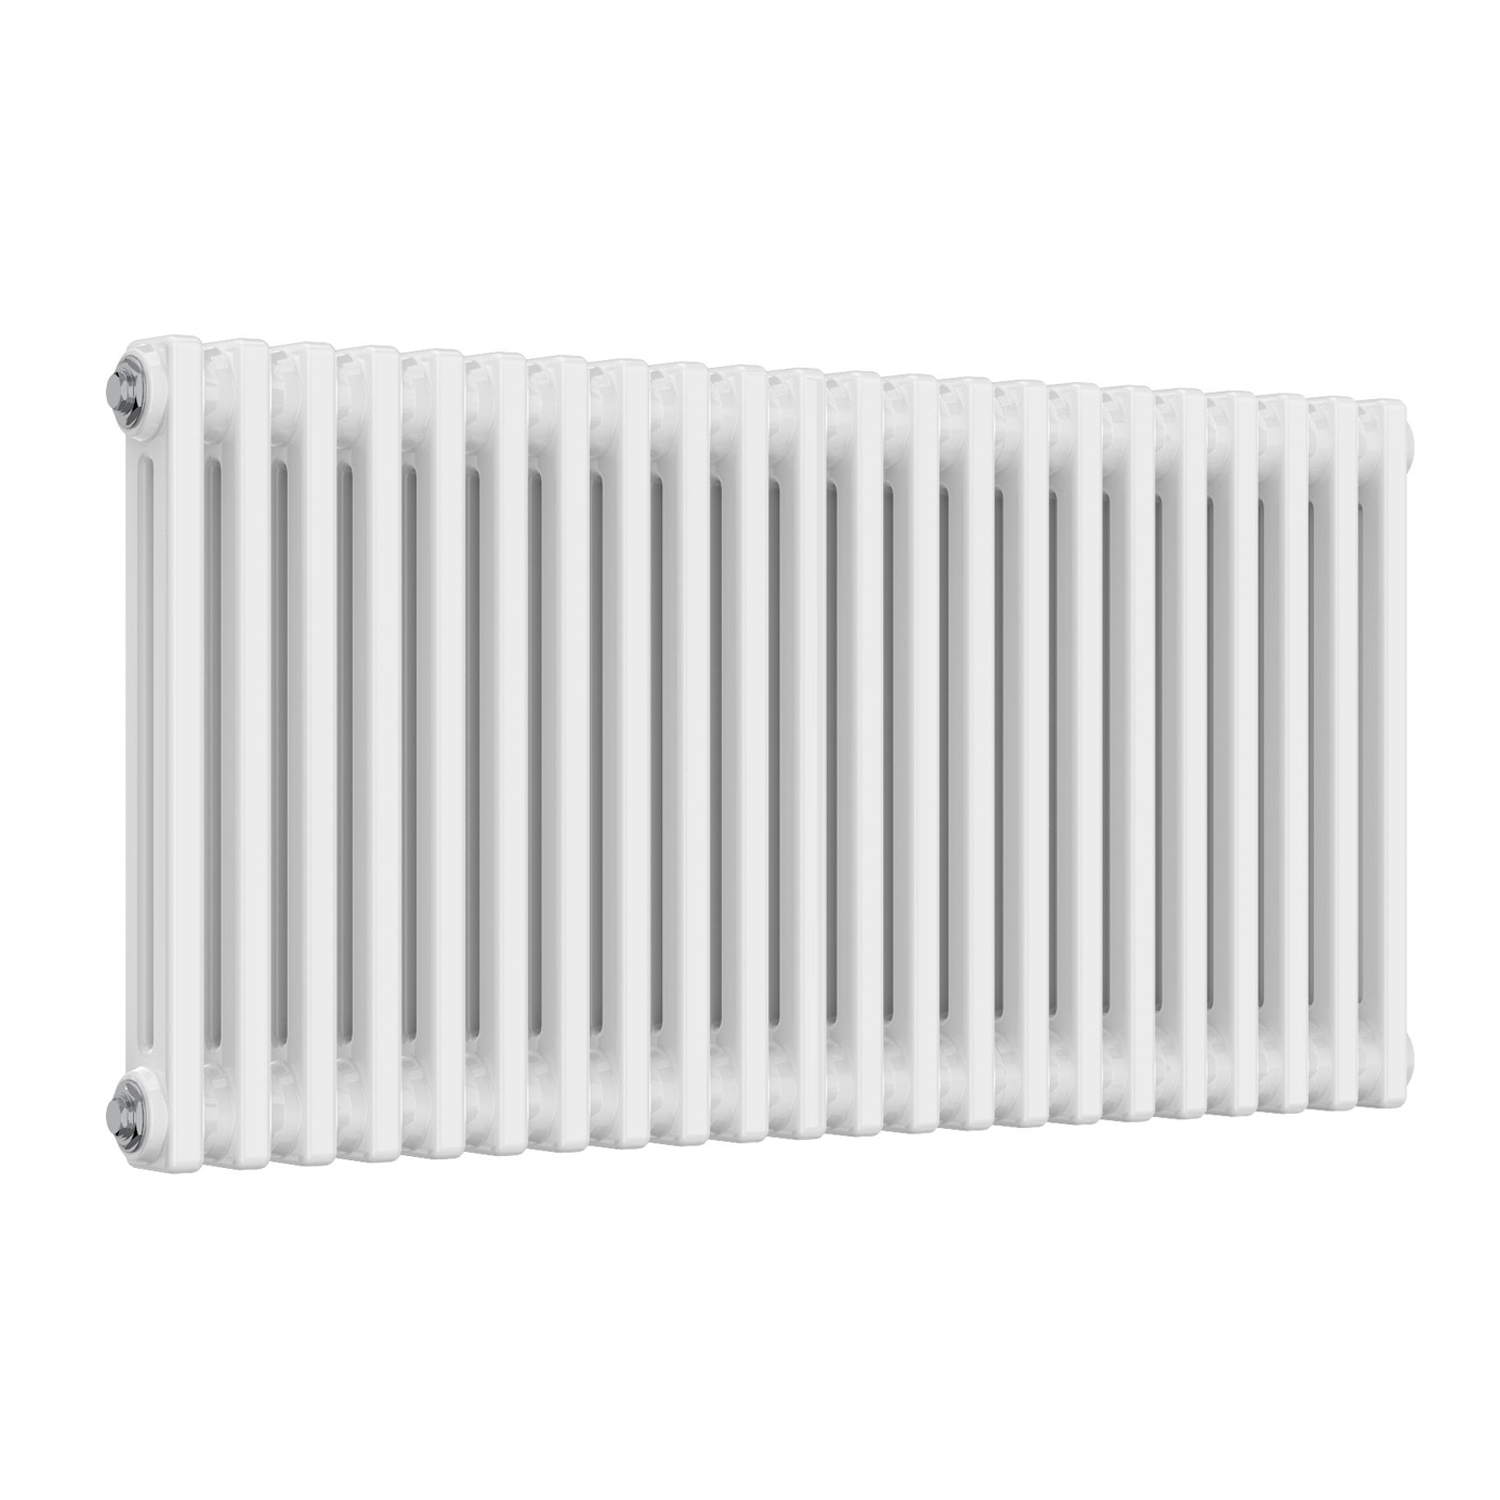 Stelrad Radical Radiator 600mm H x 400mm W Single Convector 10mm Angled TRV